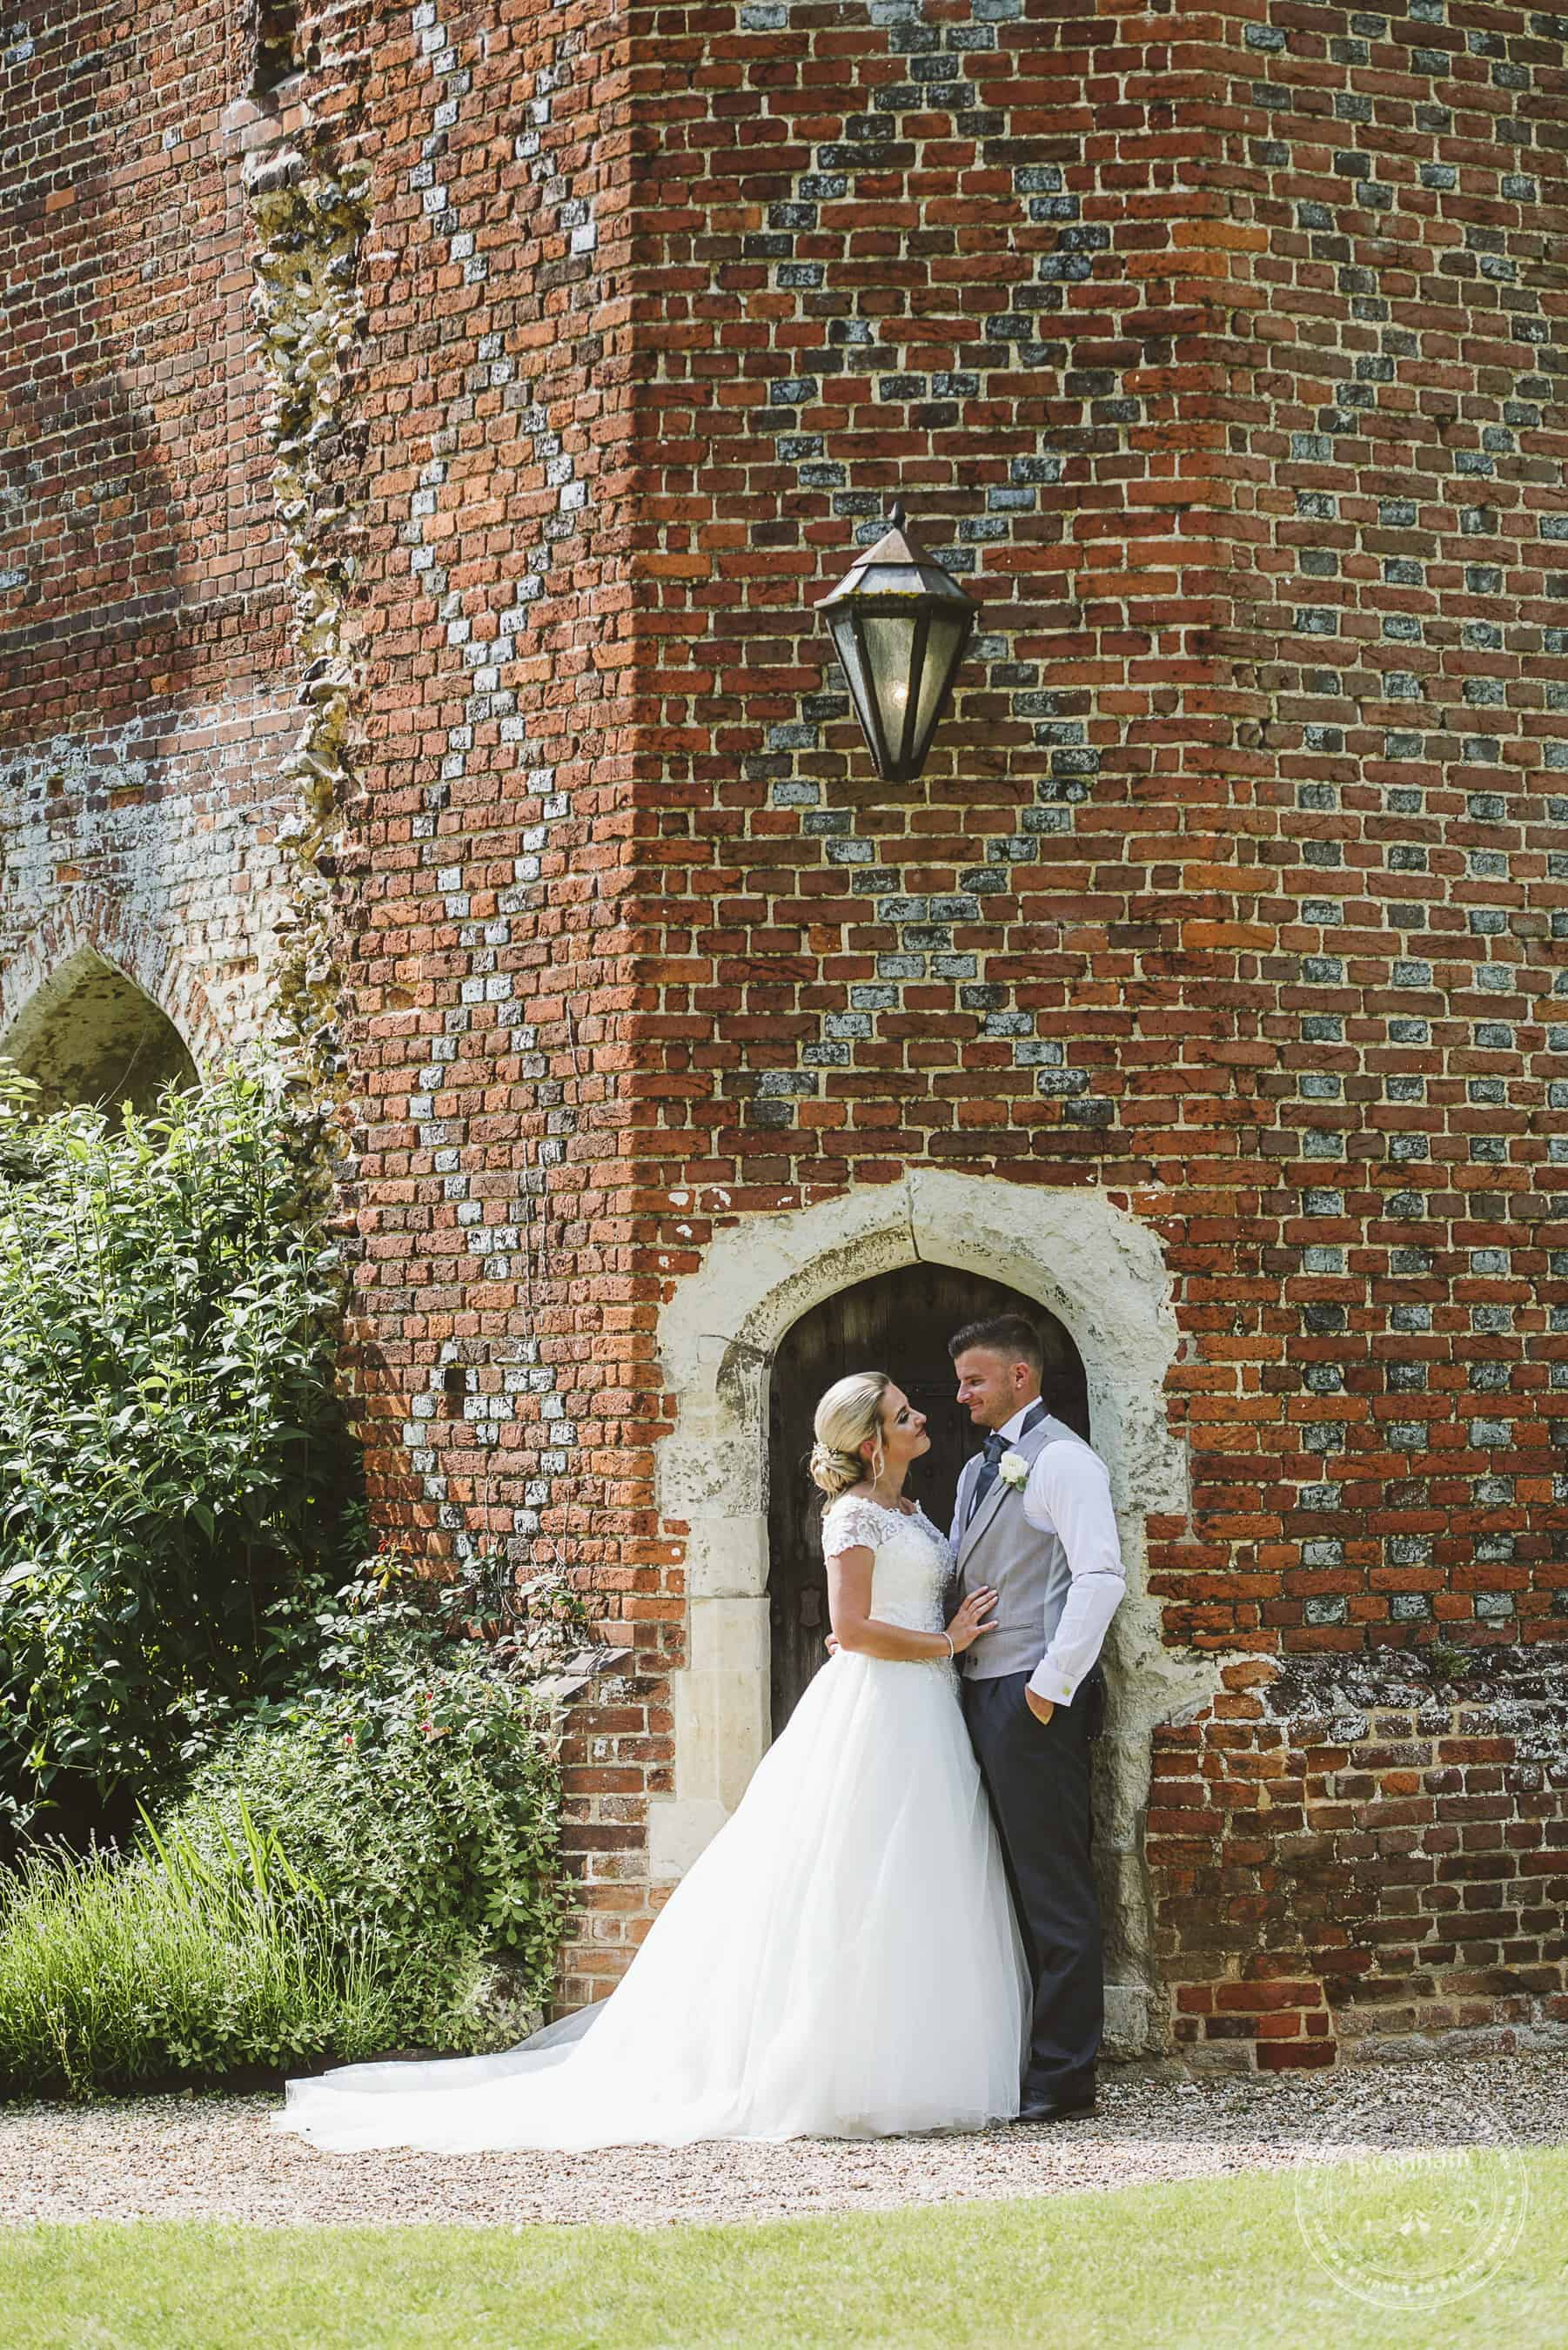 030618 Leez Priory Wedding Photography Lavenham Photographic 069